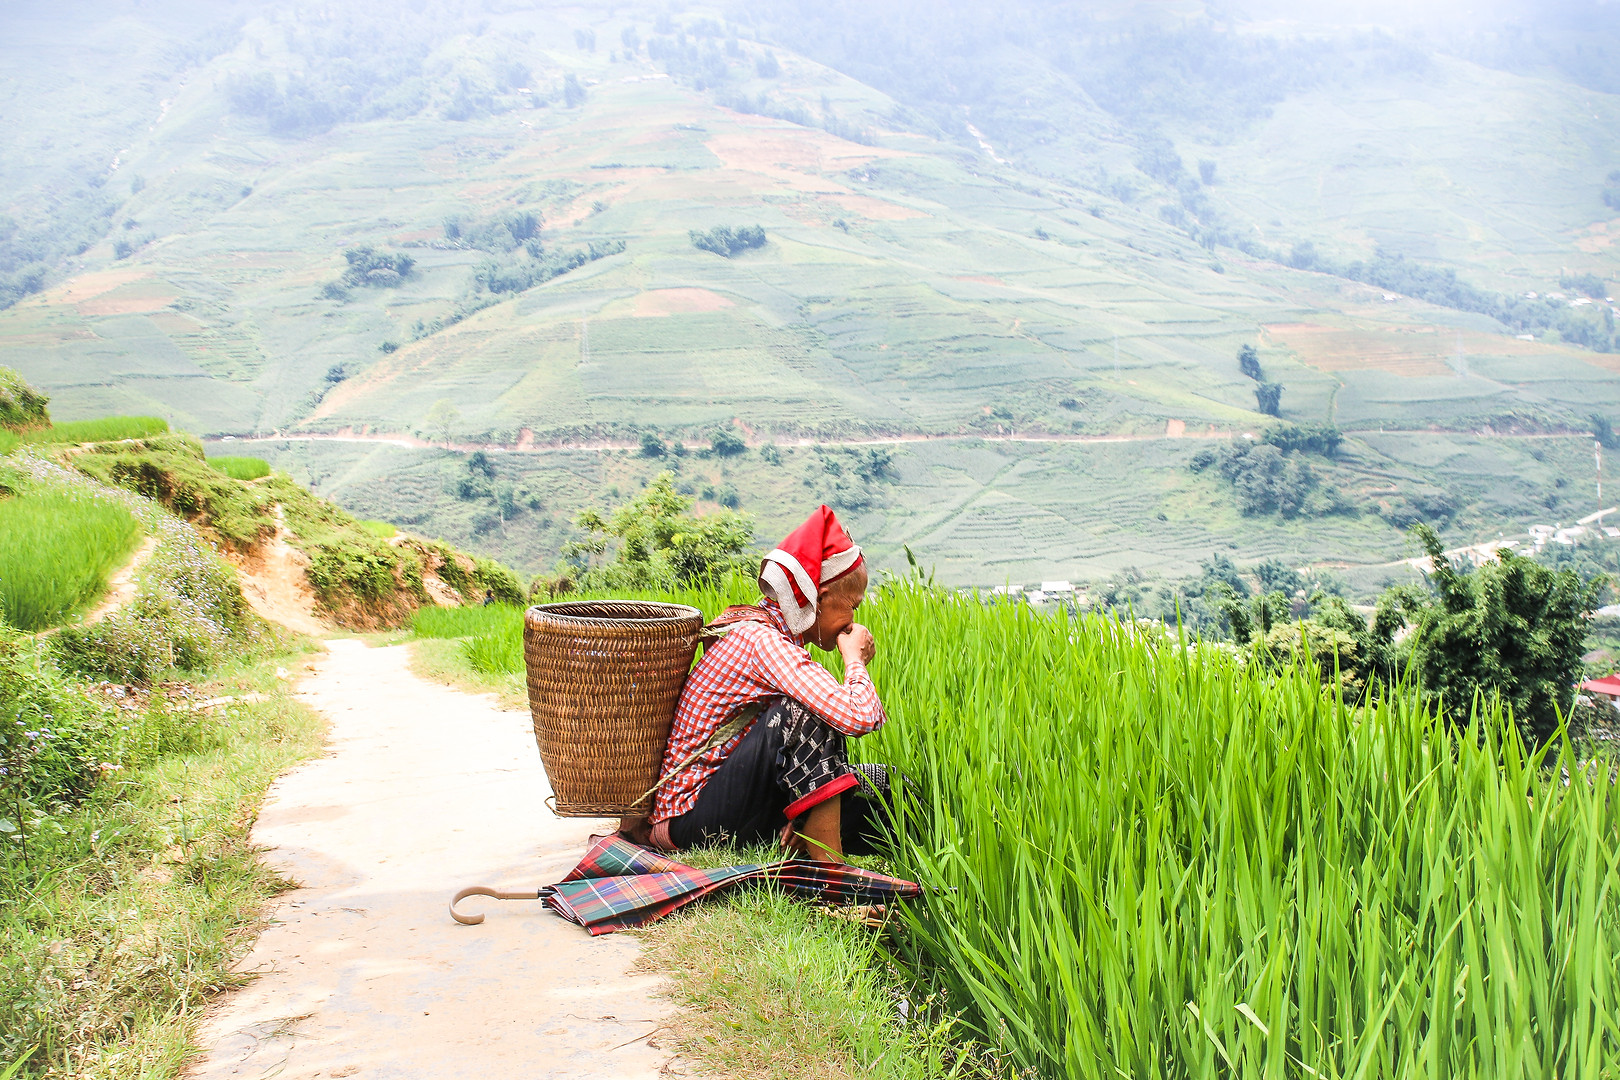 Red Dhao Woman Resting on the Trail